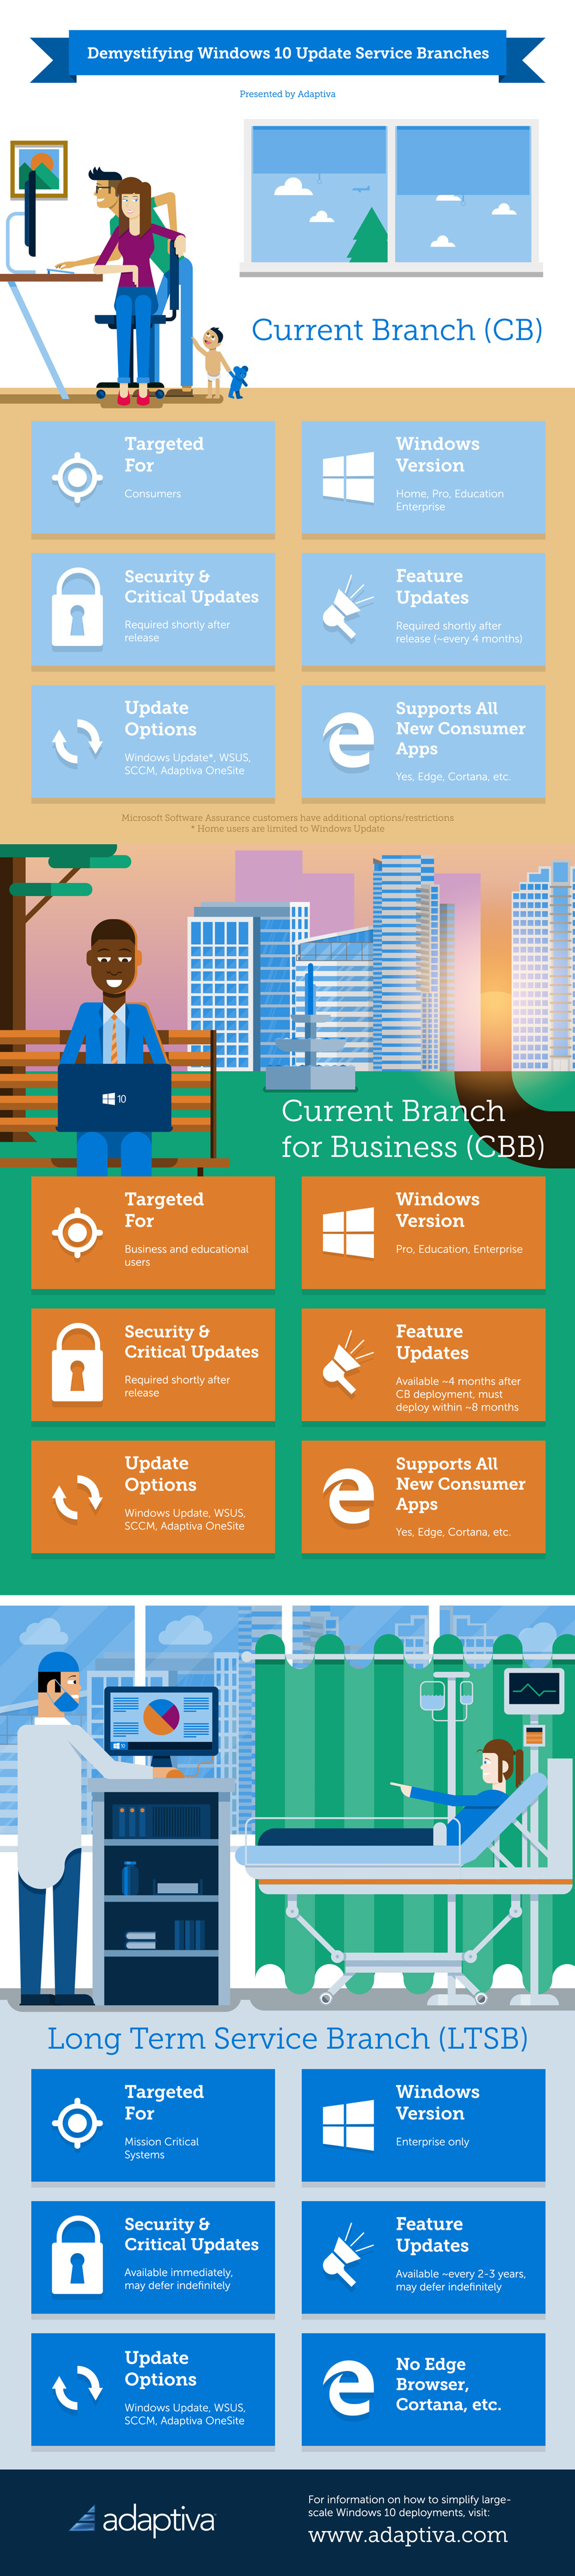 Windows-10-Update-Service-Branch-Options-Infographic.jpg